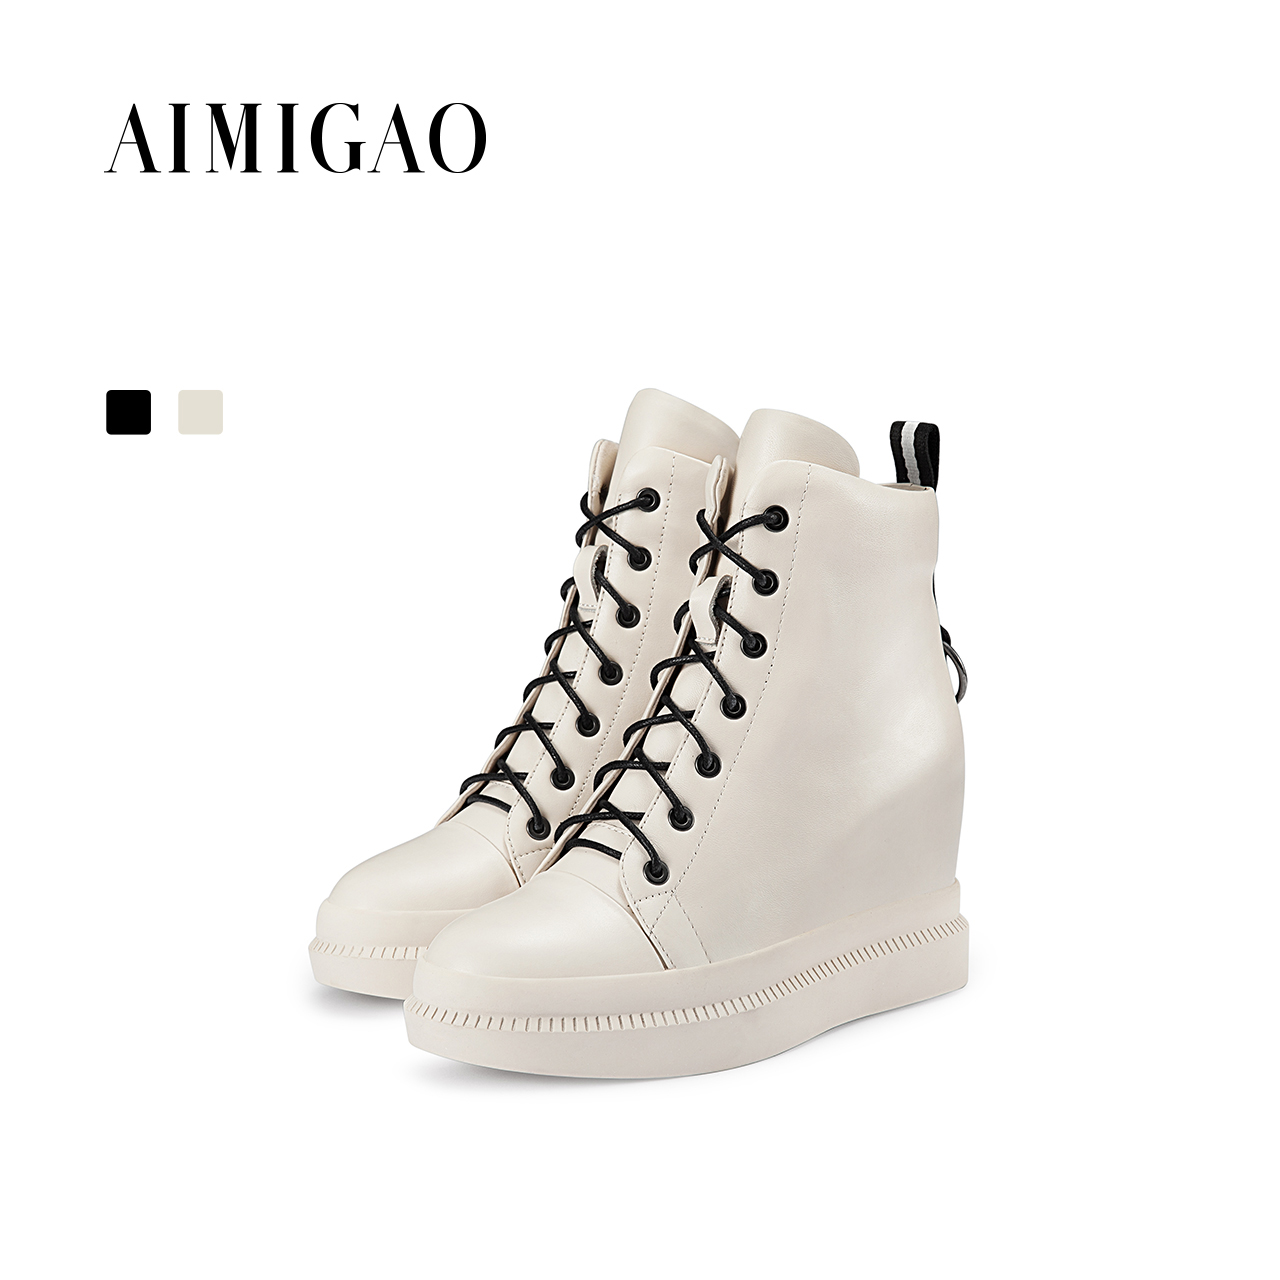 AIMIGAO Genuine Leather Comfortable casual shoes women sneakers 2017 new platform increased height fashion Lace-up Flat shoes minika new arrival 2017 casual shoes women multicolor optional comfortable women flat shoes fashion patchwork platform shoes